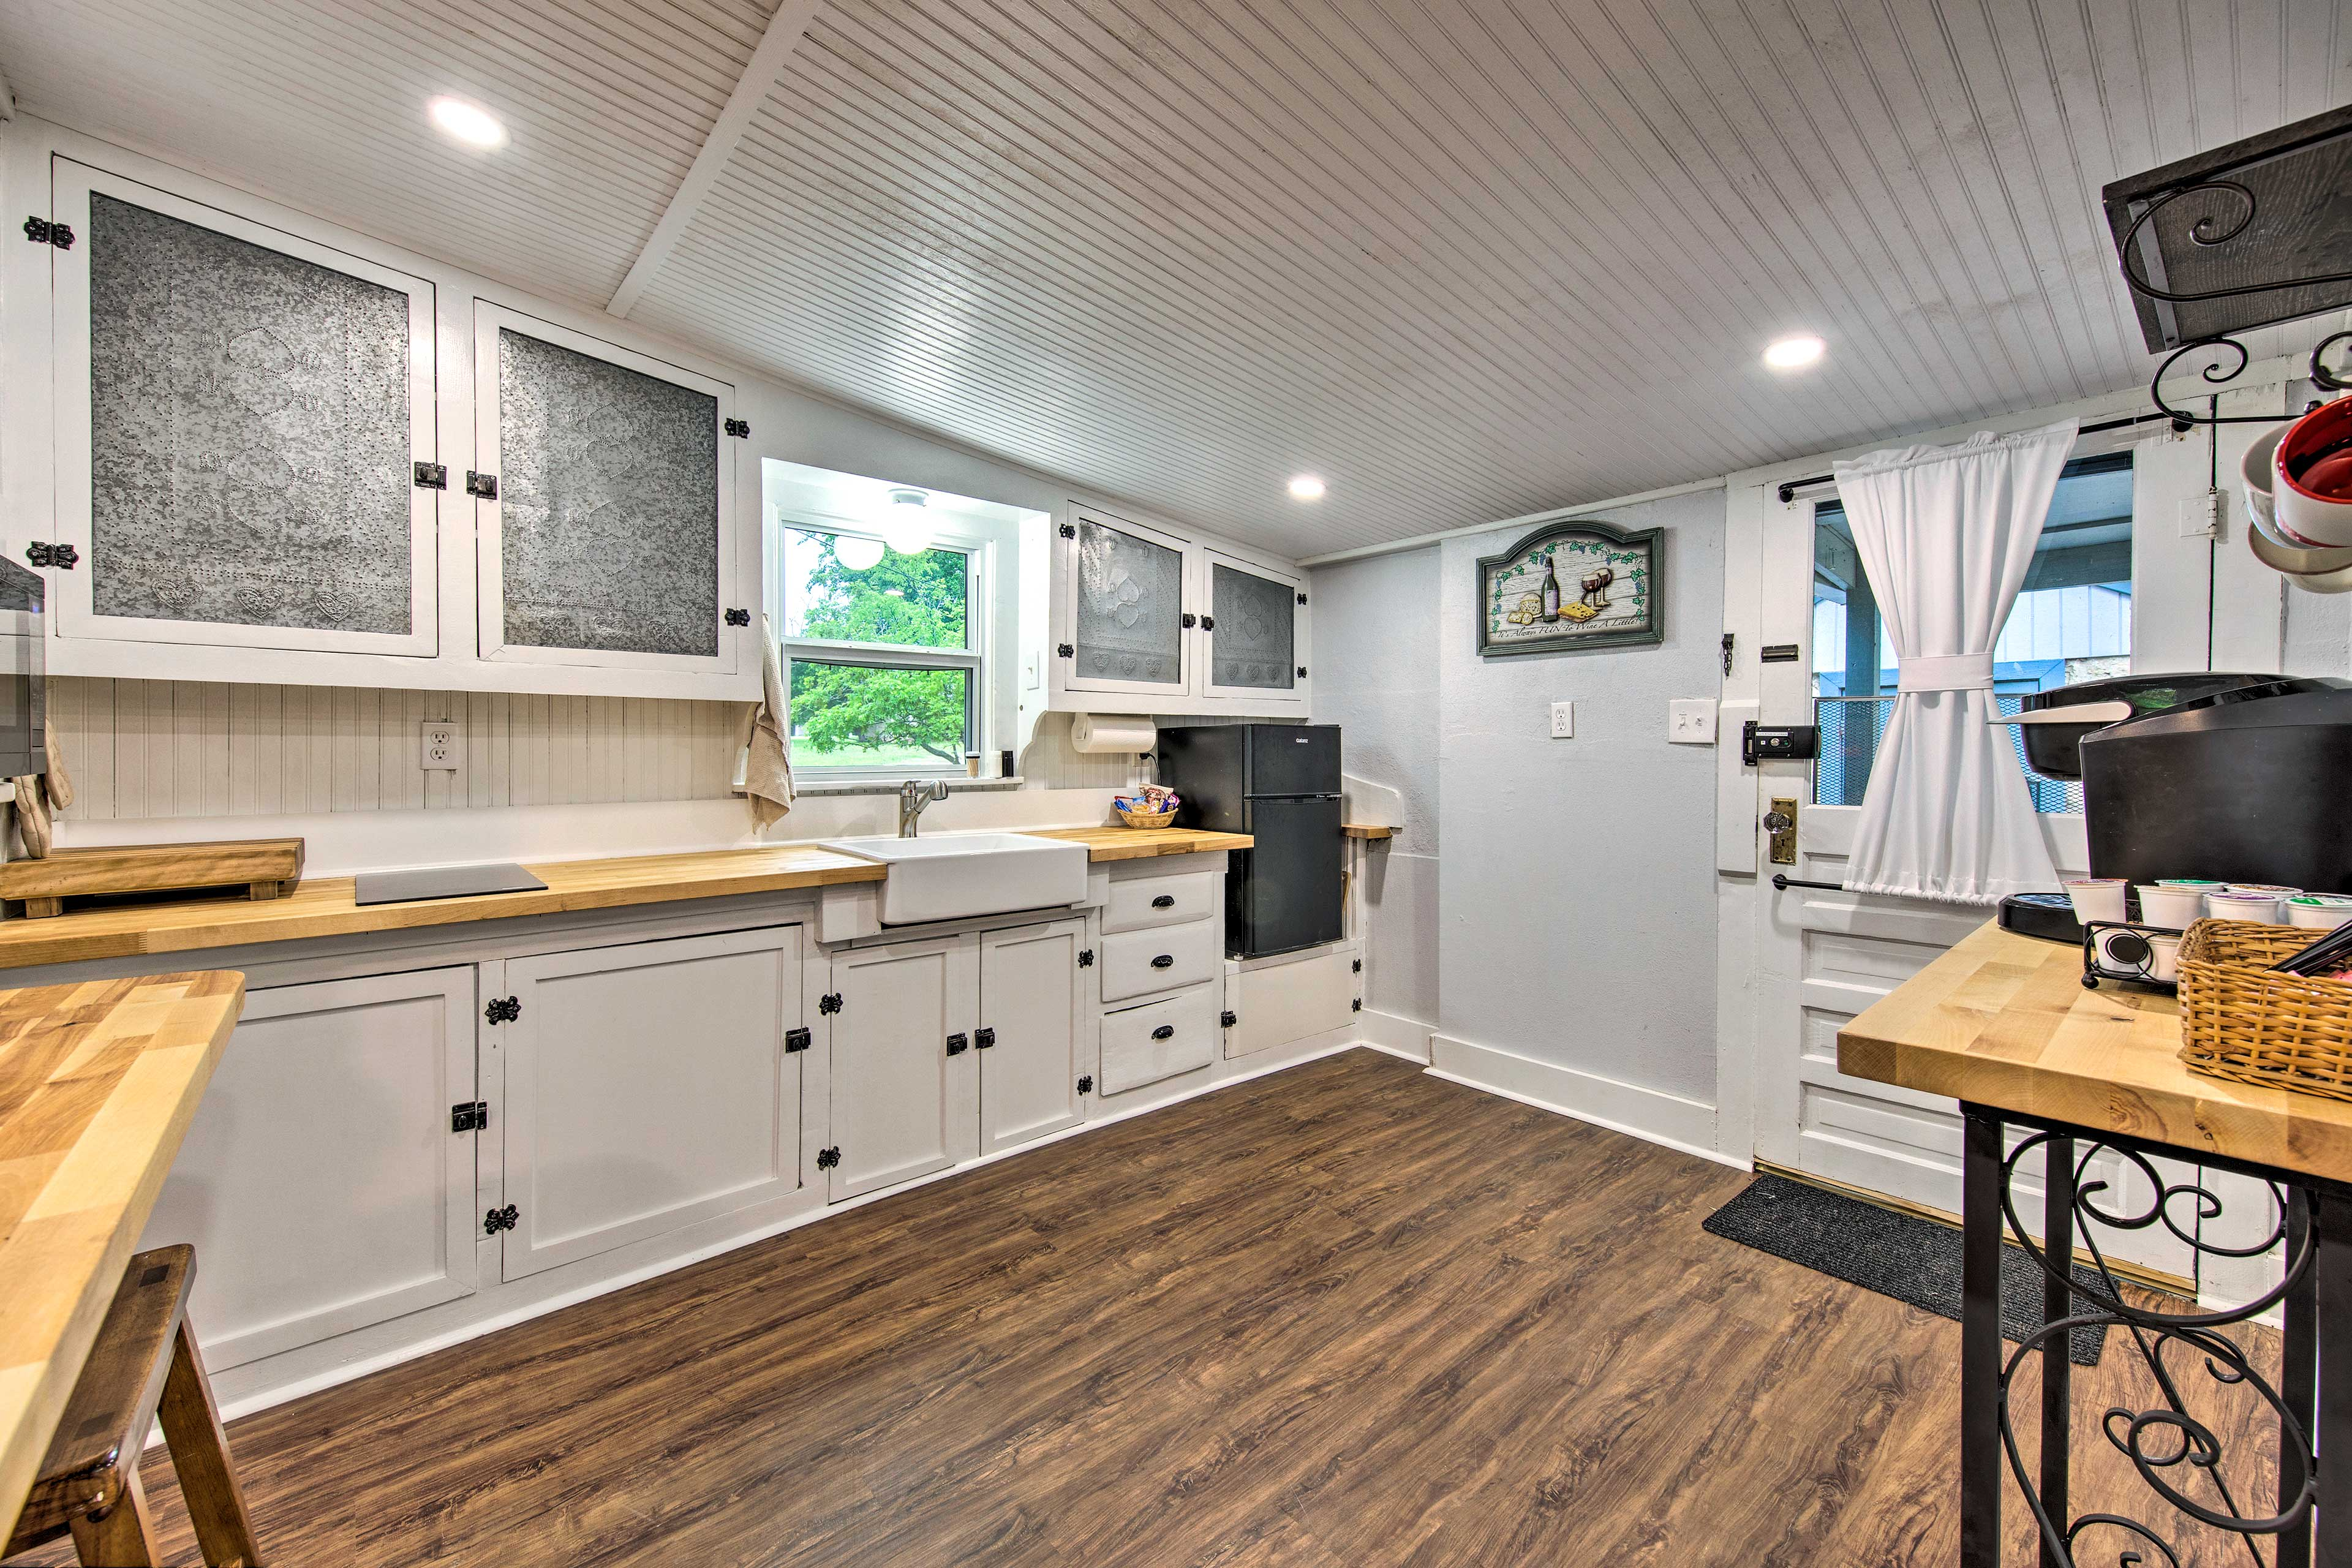 Whip up your favorite fixins in this kitchen!